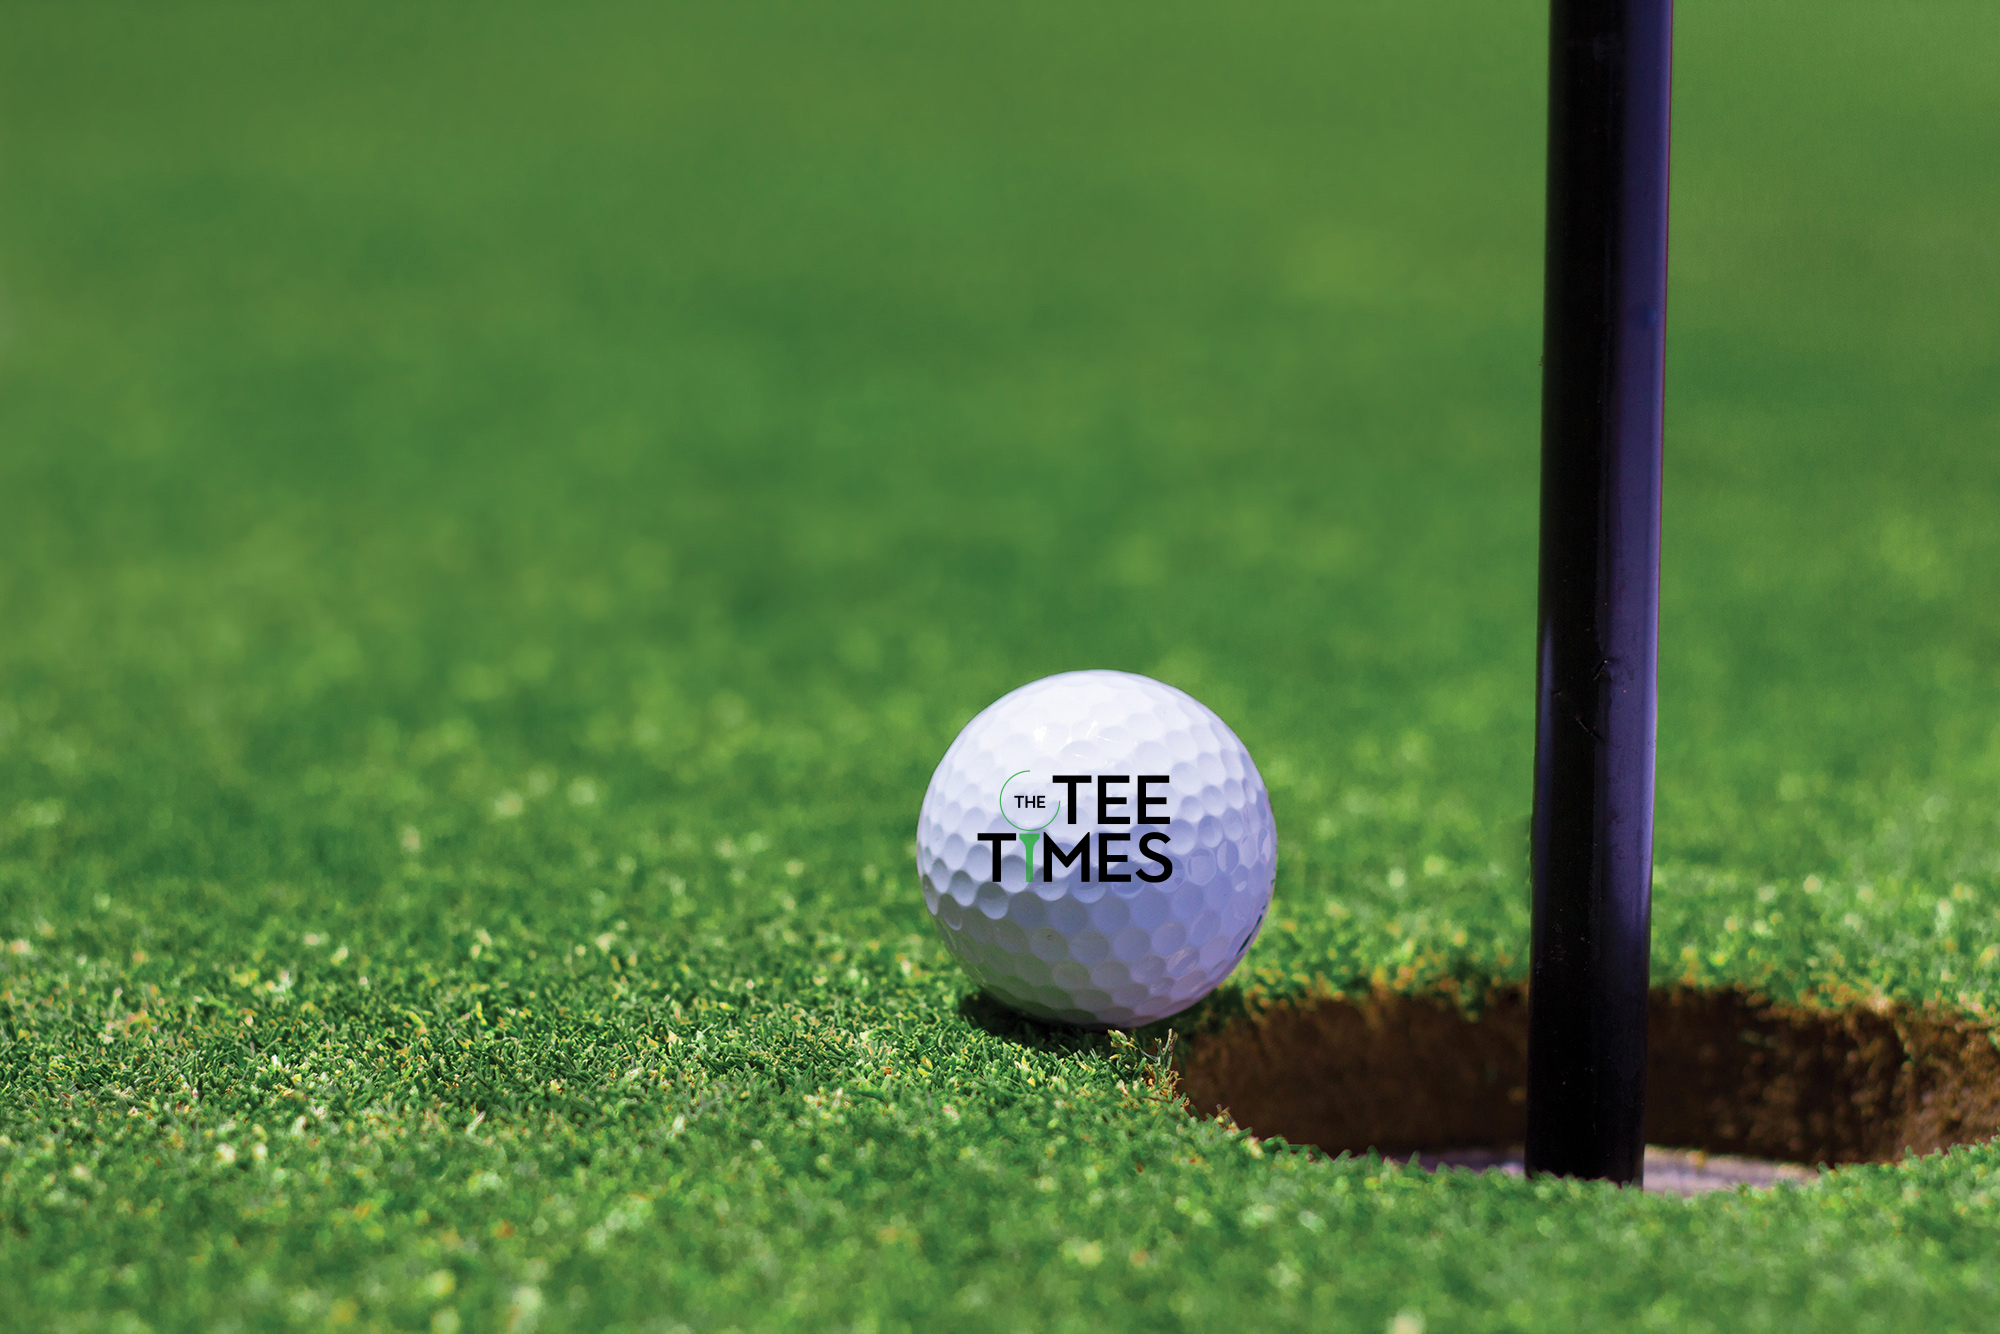 Record your hole-in-one